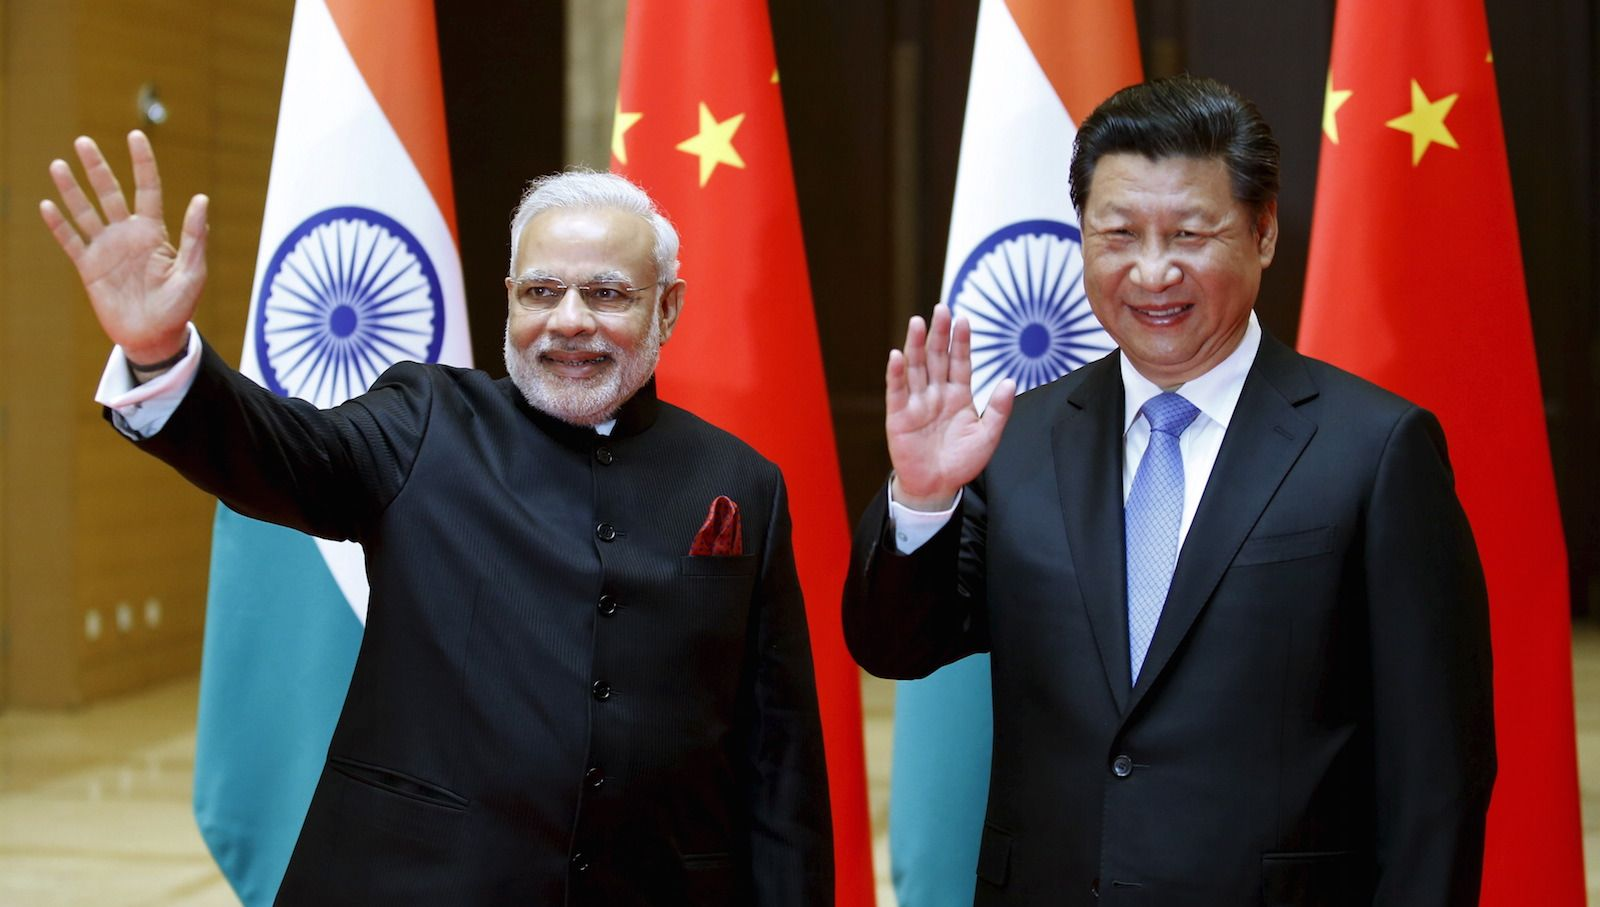 India and China: Two Very Different Paths to Development